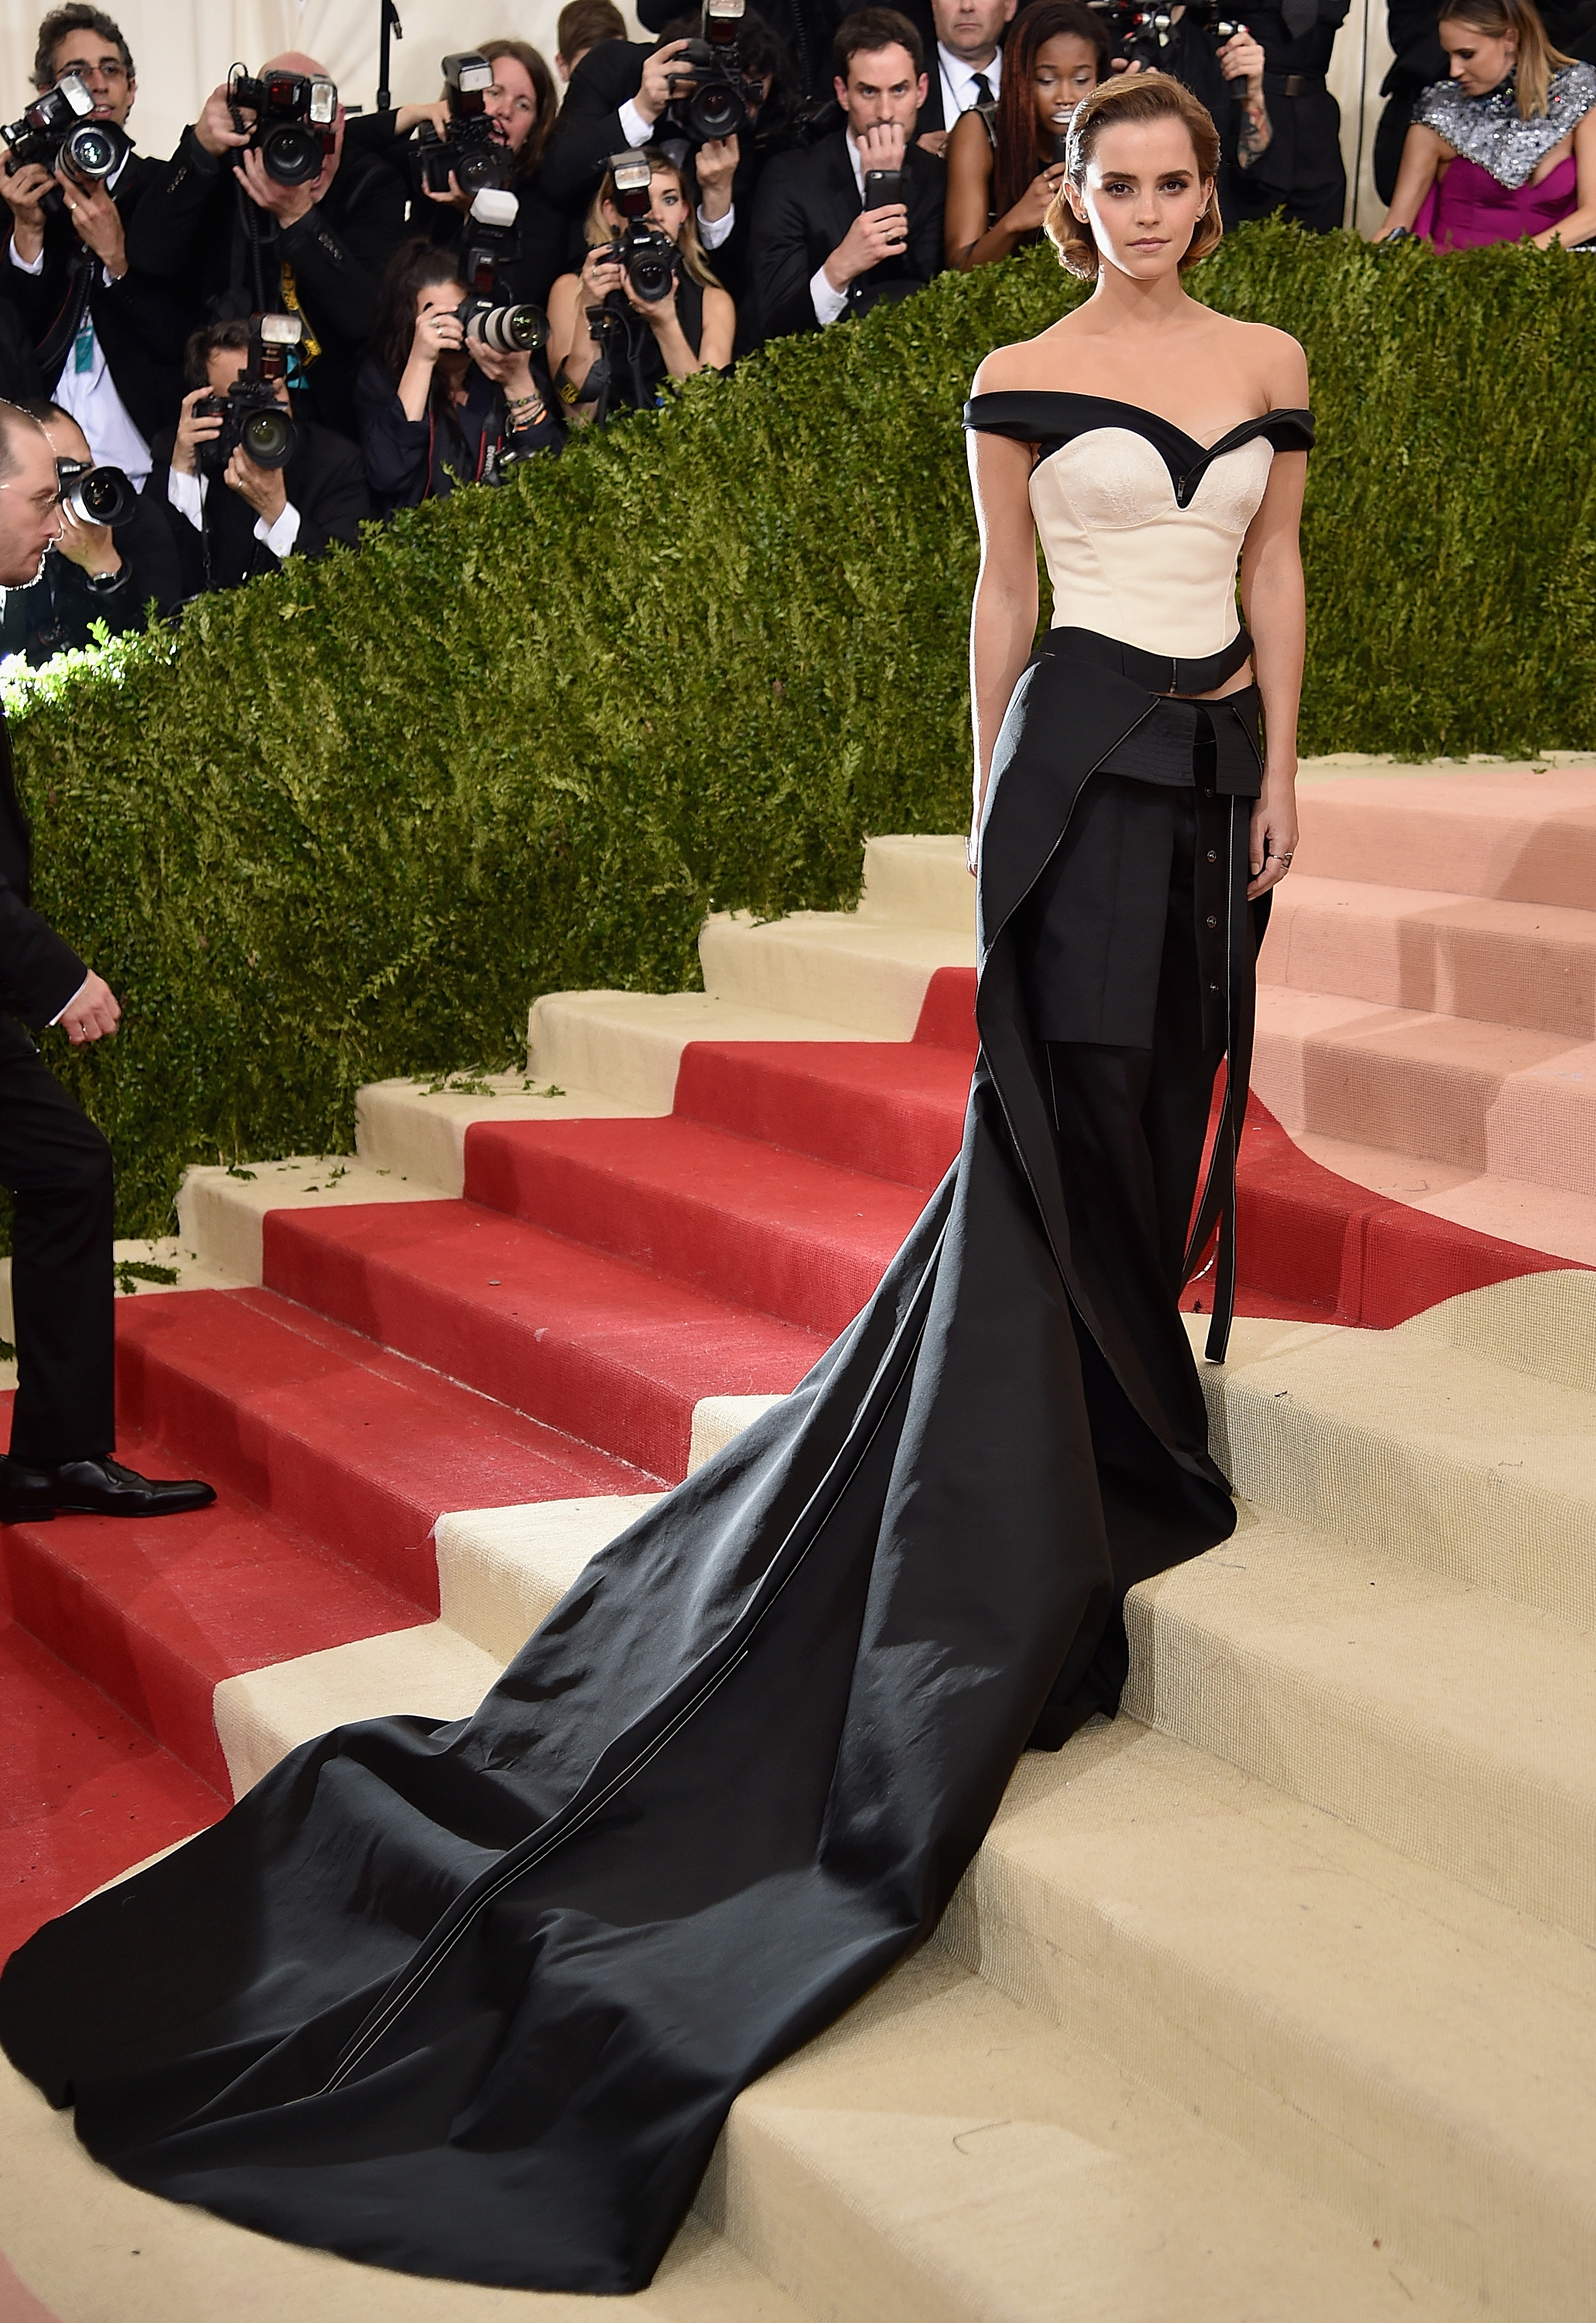 Calvin Klein Green Carpet Challenge dress worn by Emma Watson to the MET Gala 2016,  Photo by Dimitrios Kambouris/Getty Images